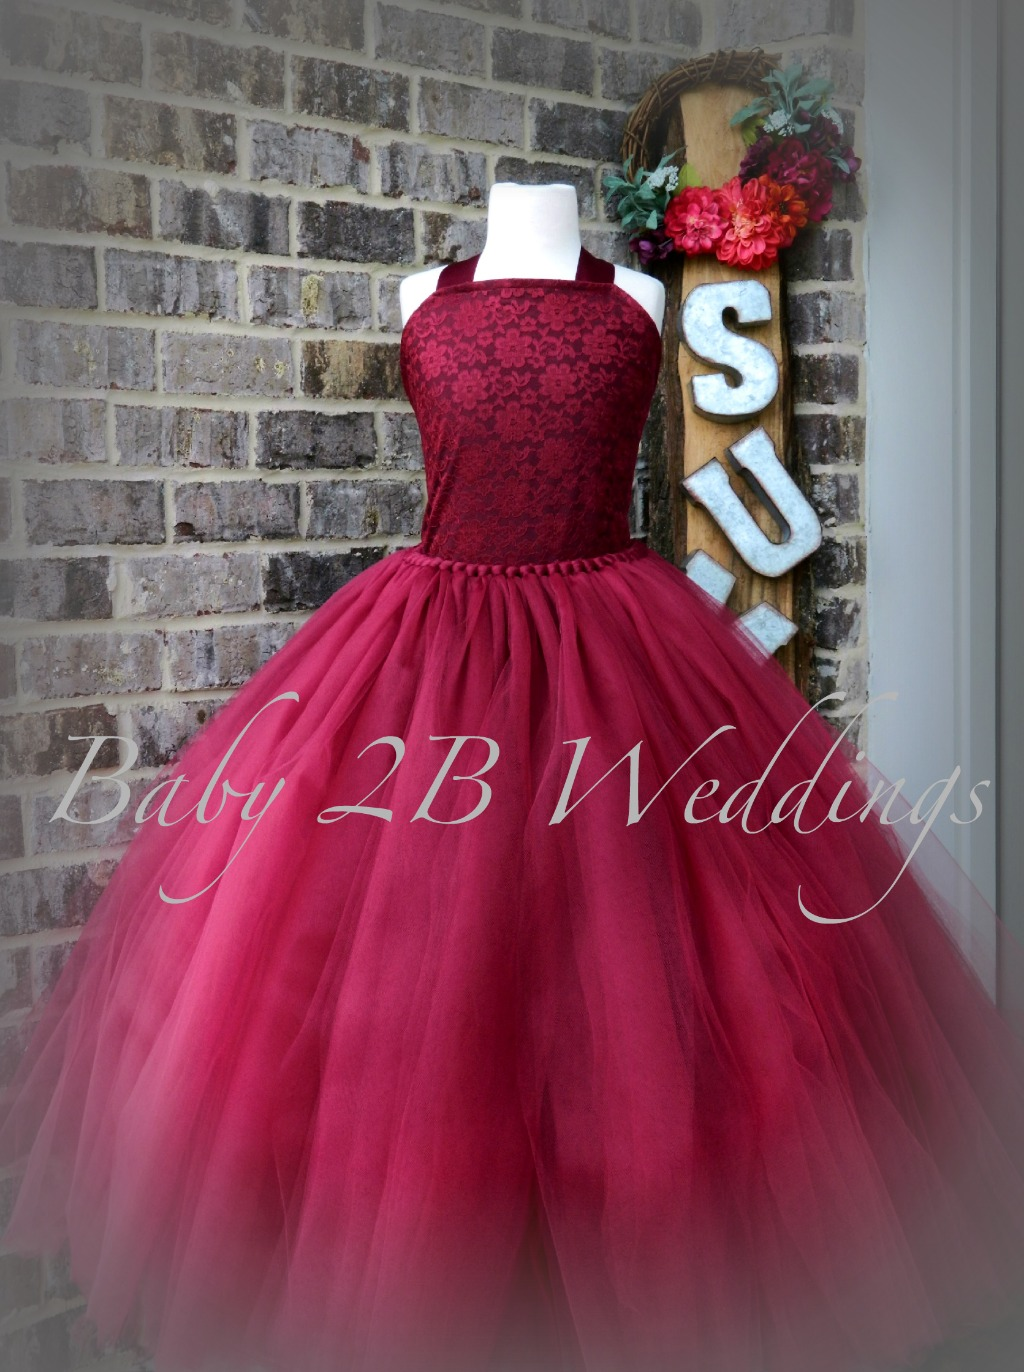 Just in time for fall! Our burgundy wine dress will be perfect for your little flower girl!